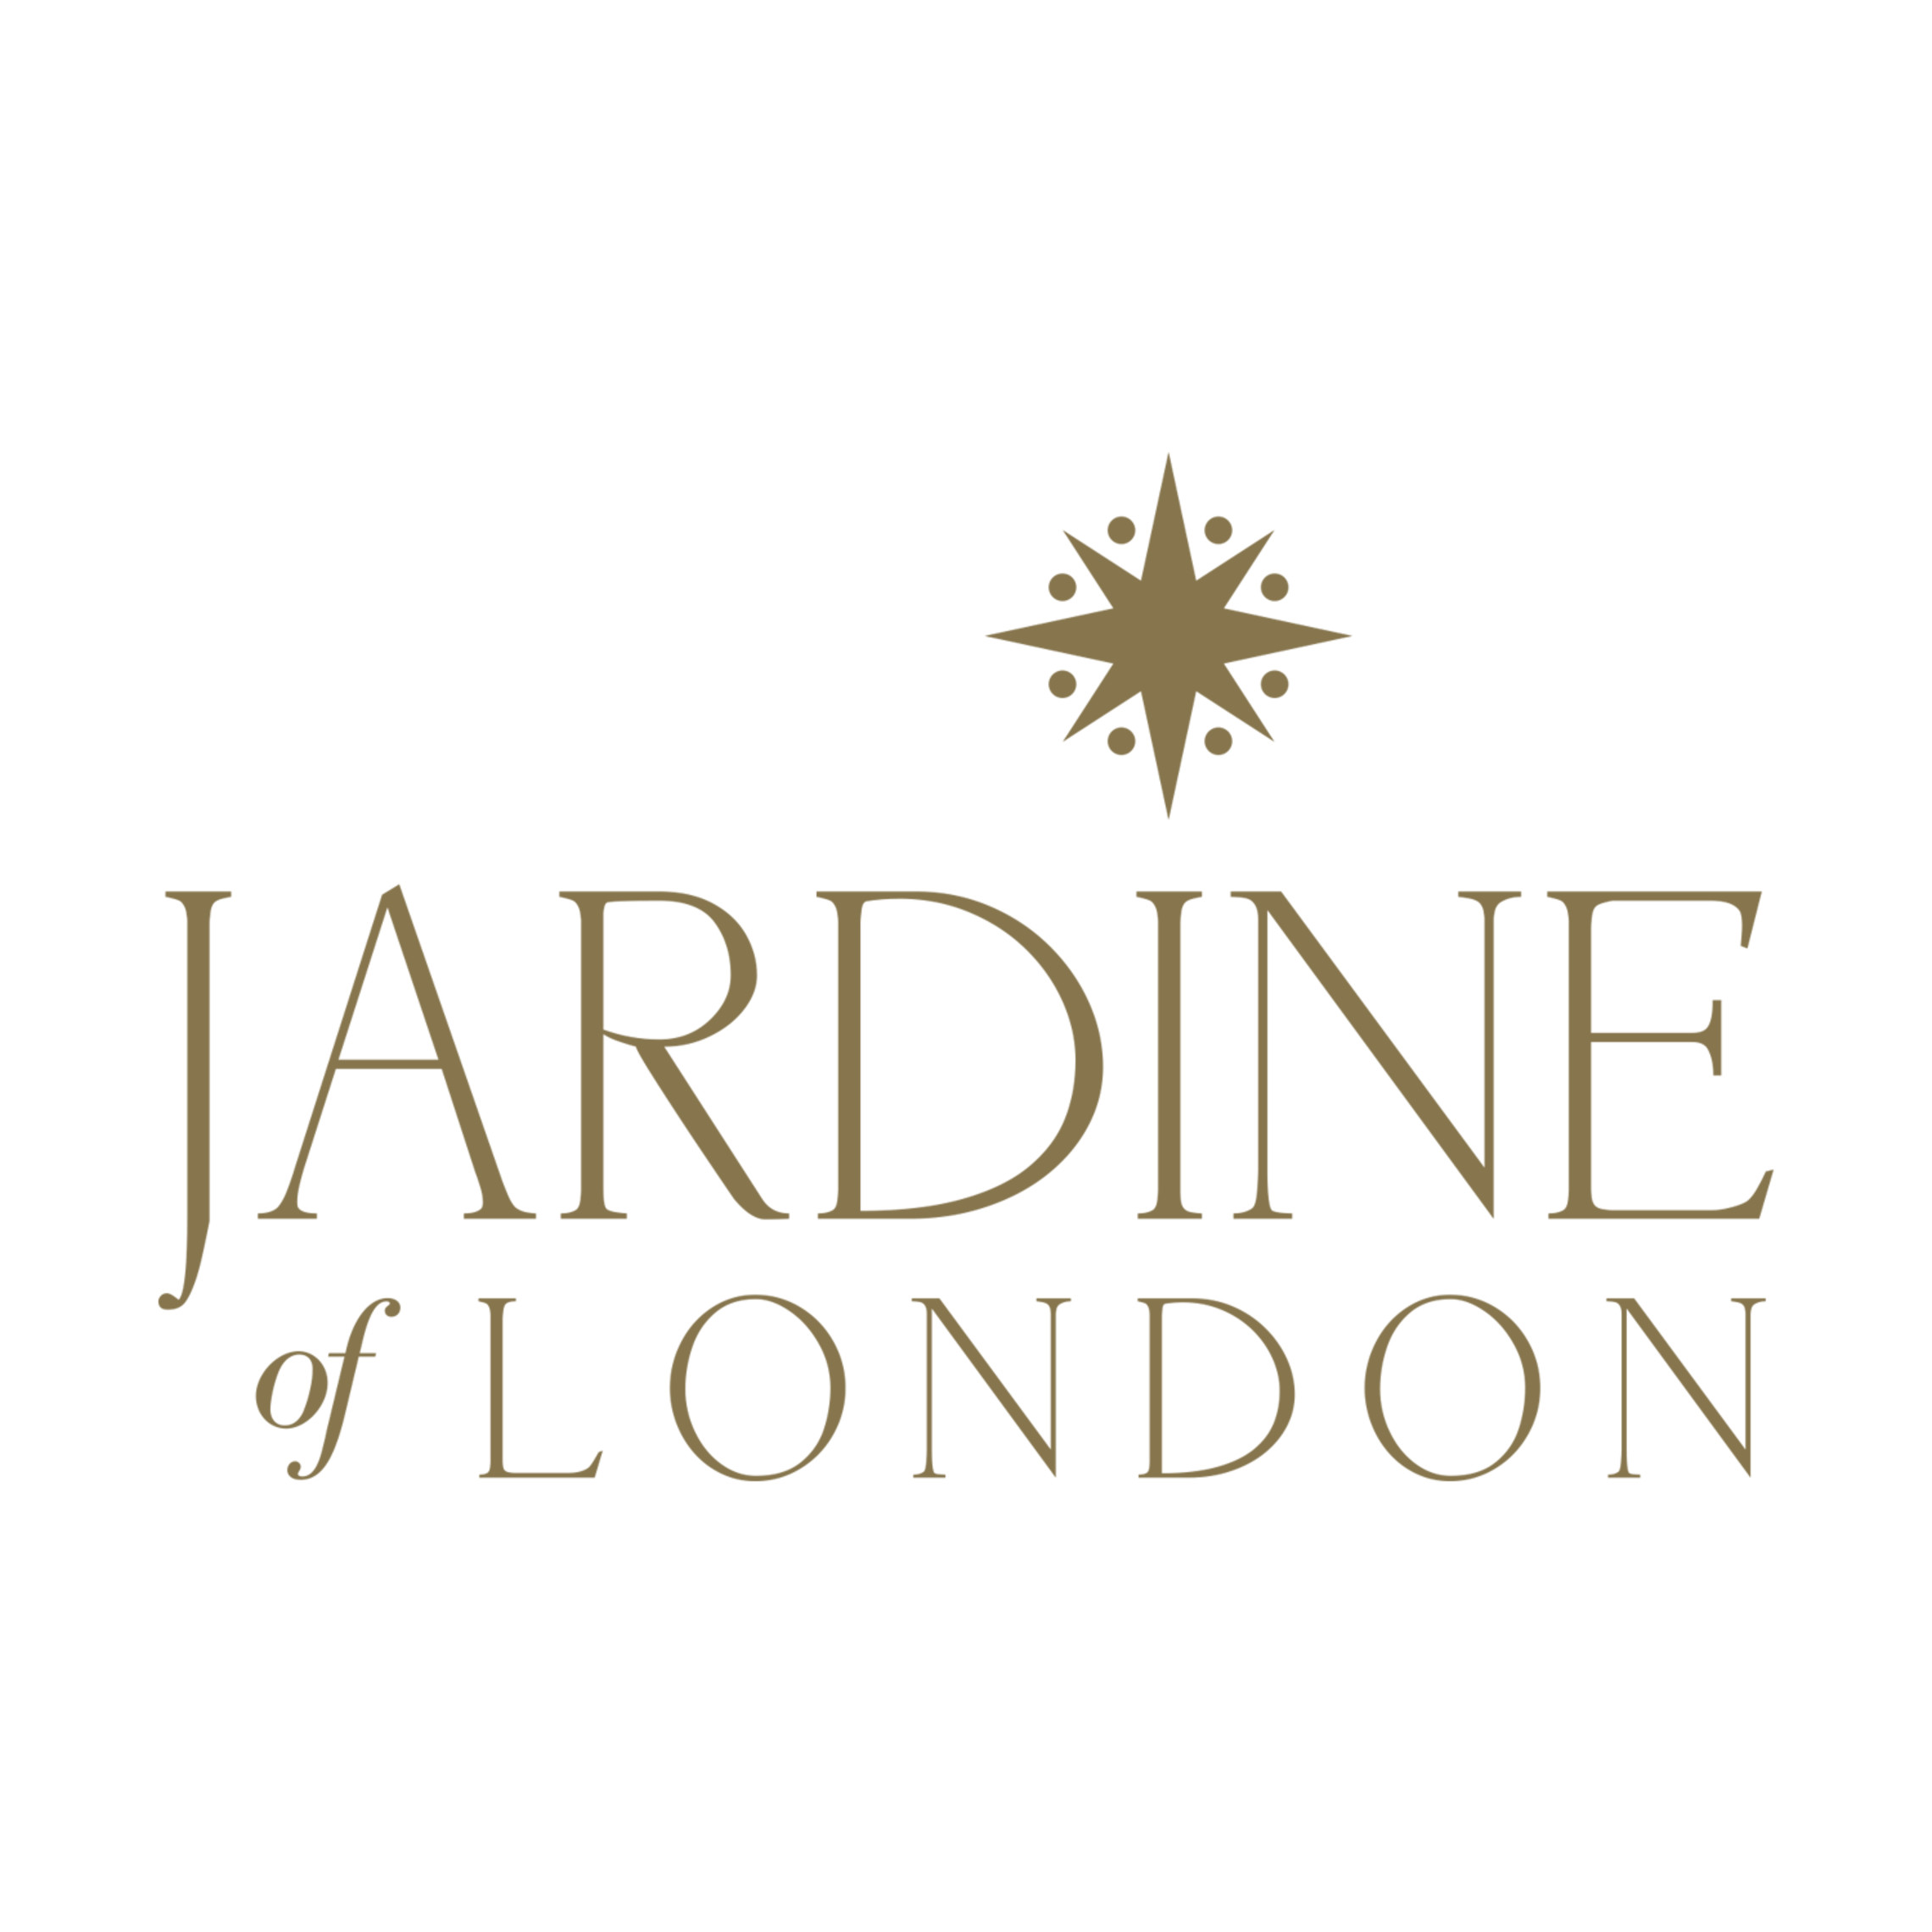 jardine of london- company logo